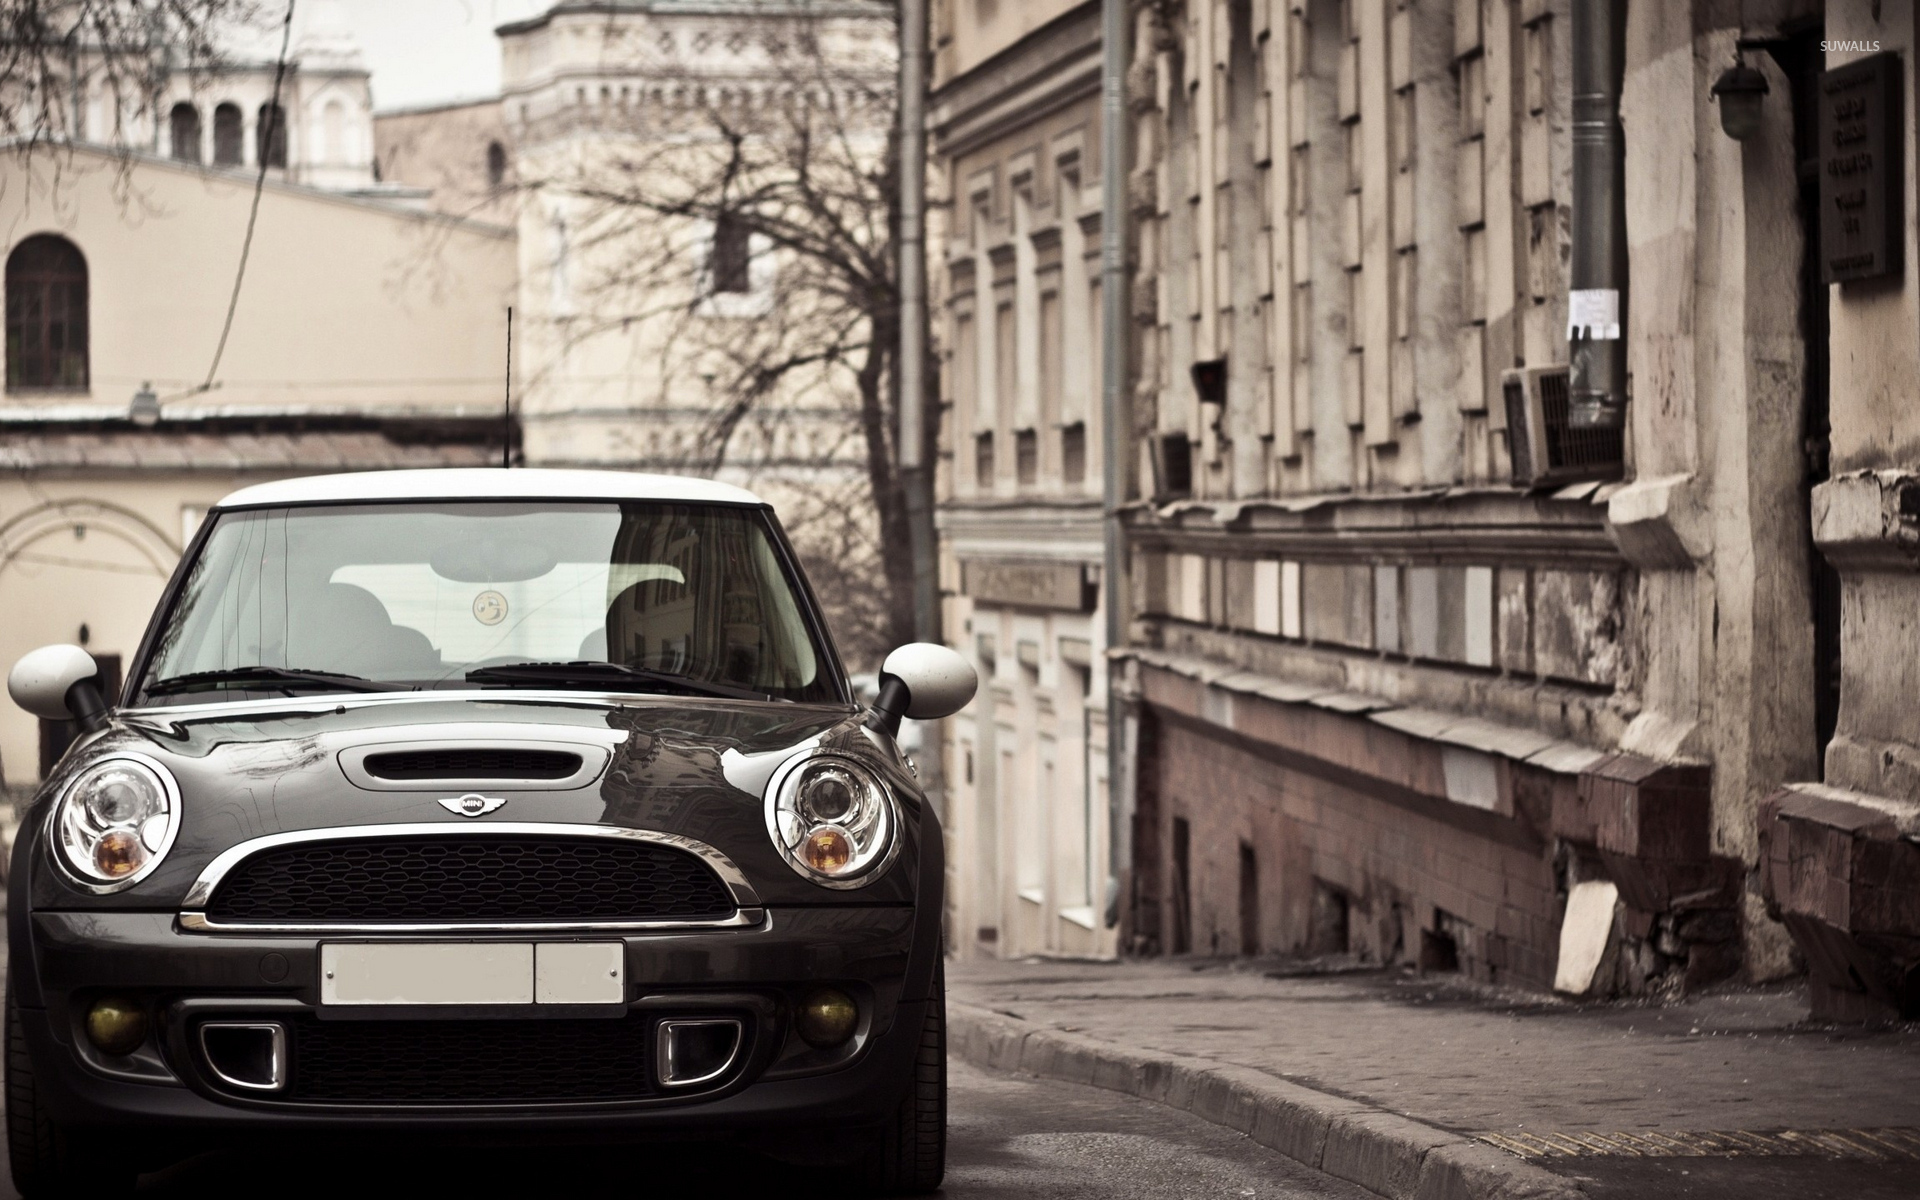 MINI Cooper S On The Street Wallpaper Car Wallpapers